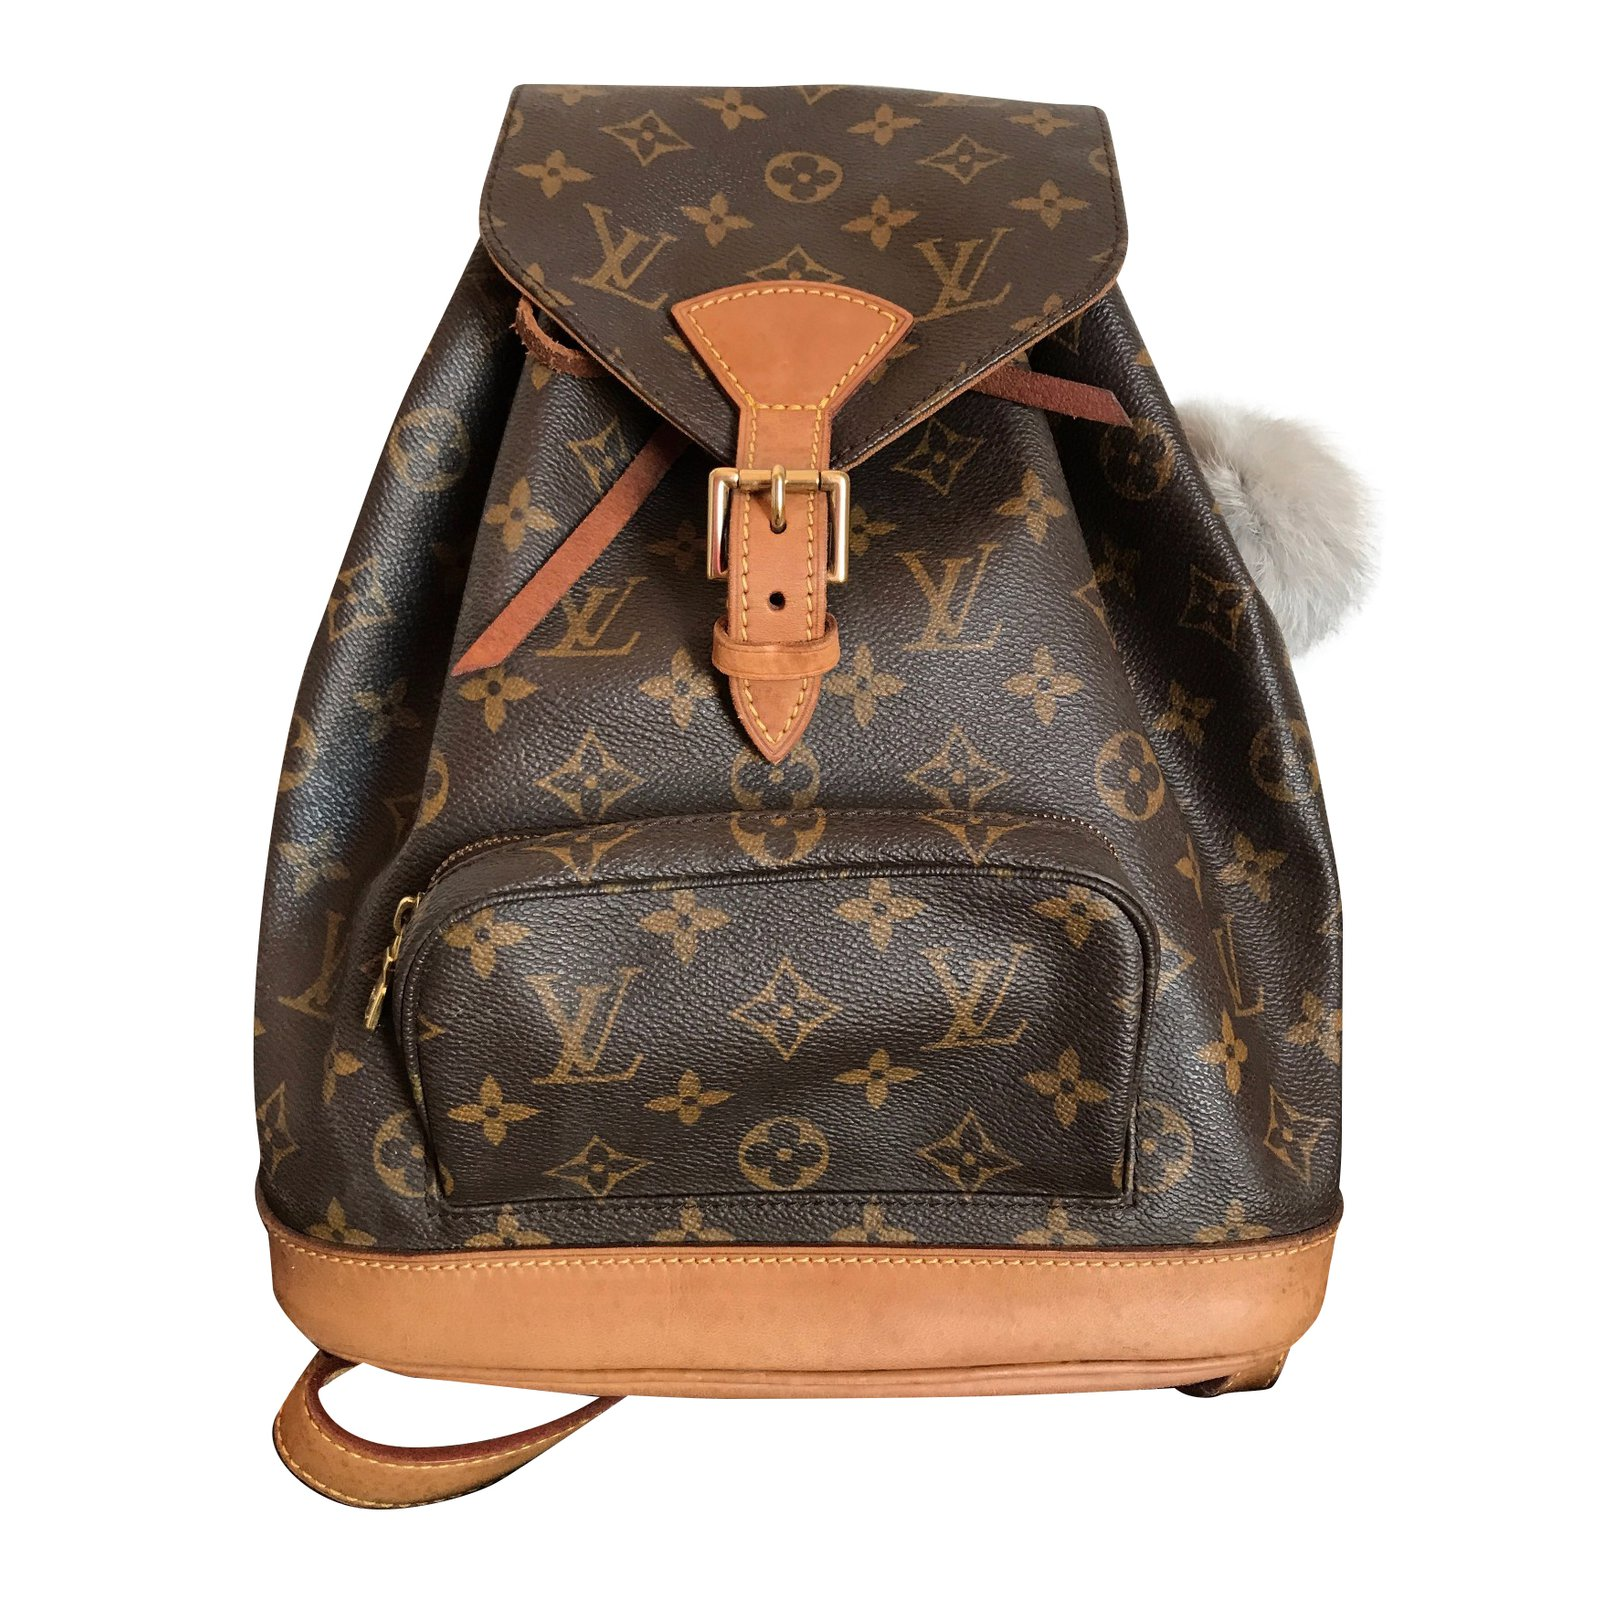 louis vuitton backpack montsouris mm canvas monogram backpacks leather other brown golden ref